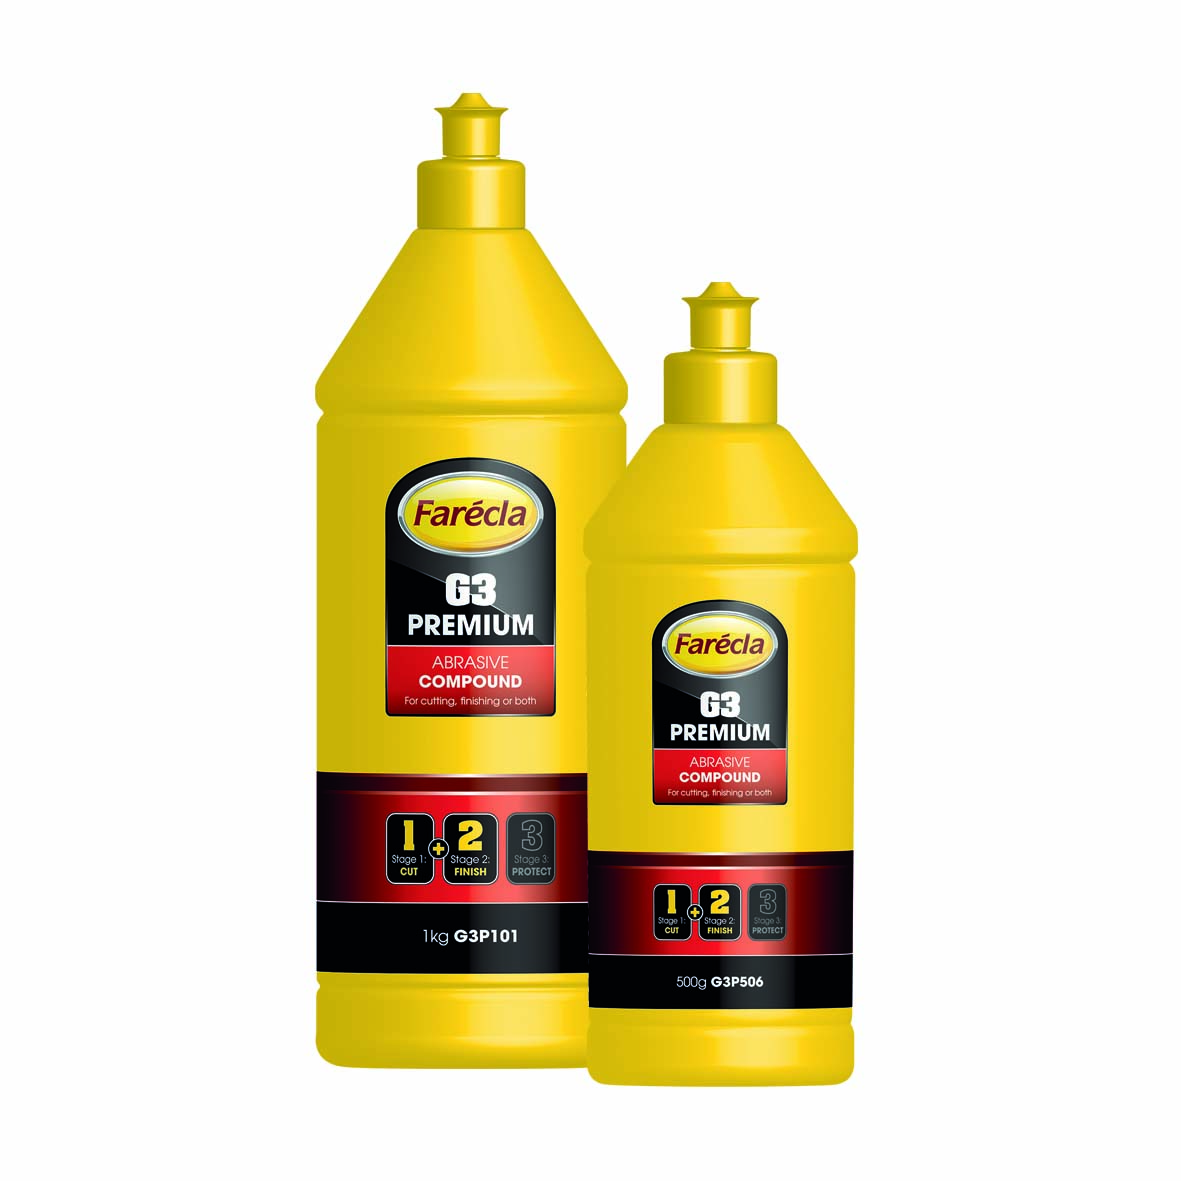 G3 Premium Abrasive Compound